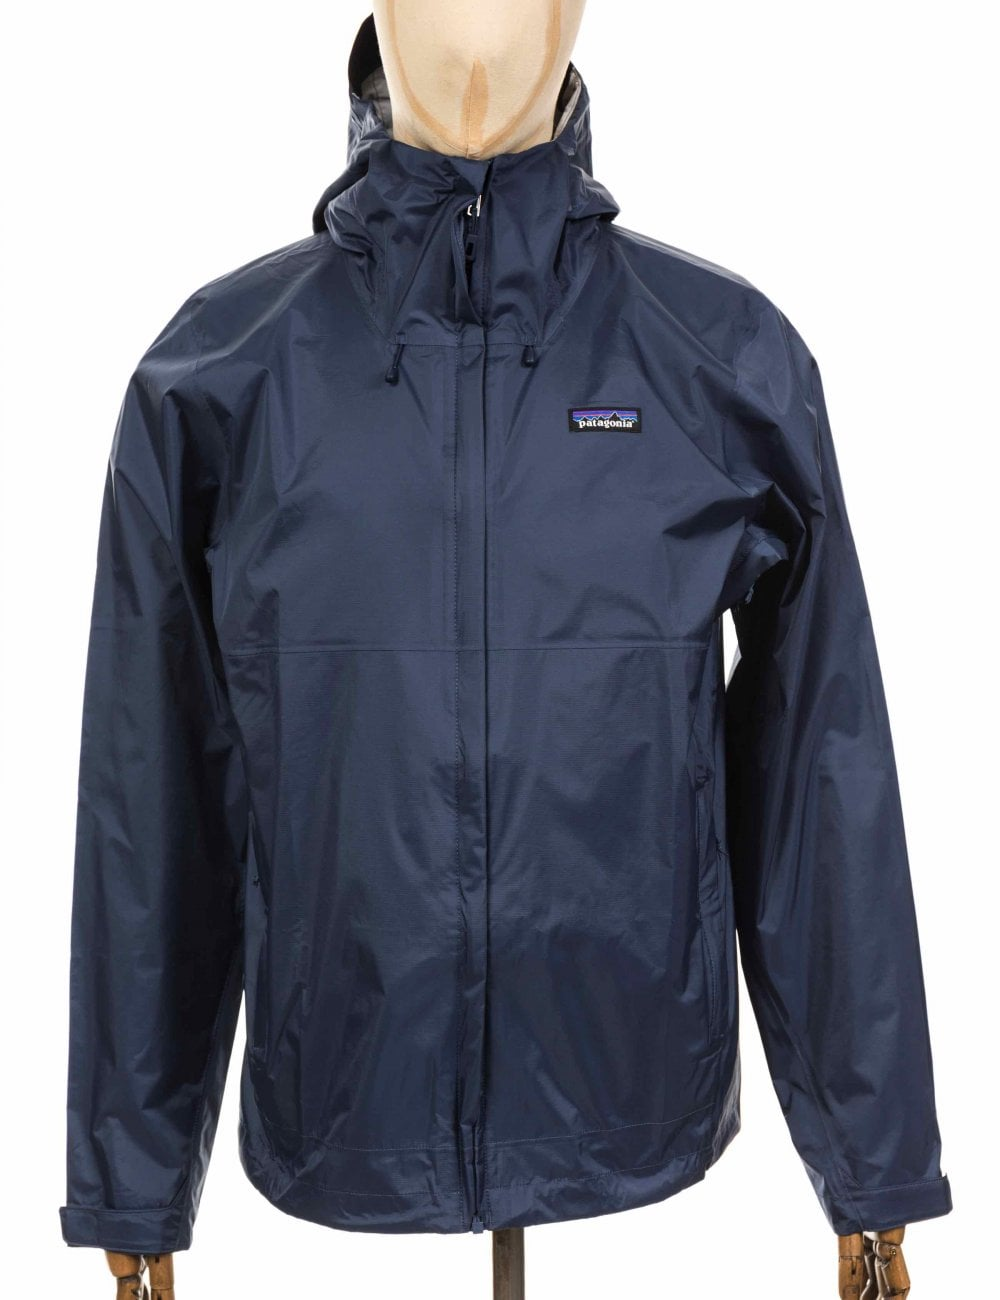 new release wide selection of colors hot-selling newest Torrentshell Jacket - Dolomite Blue